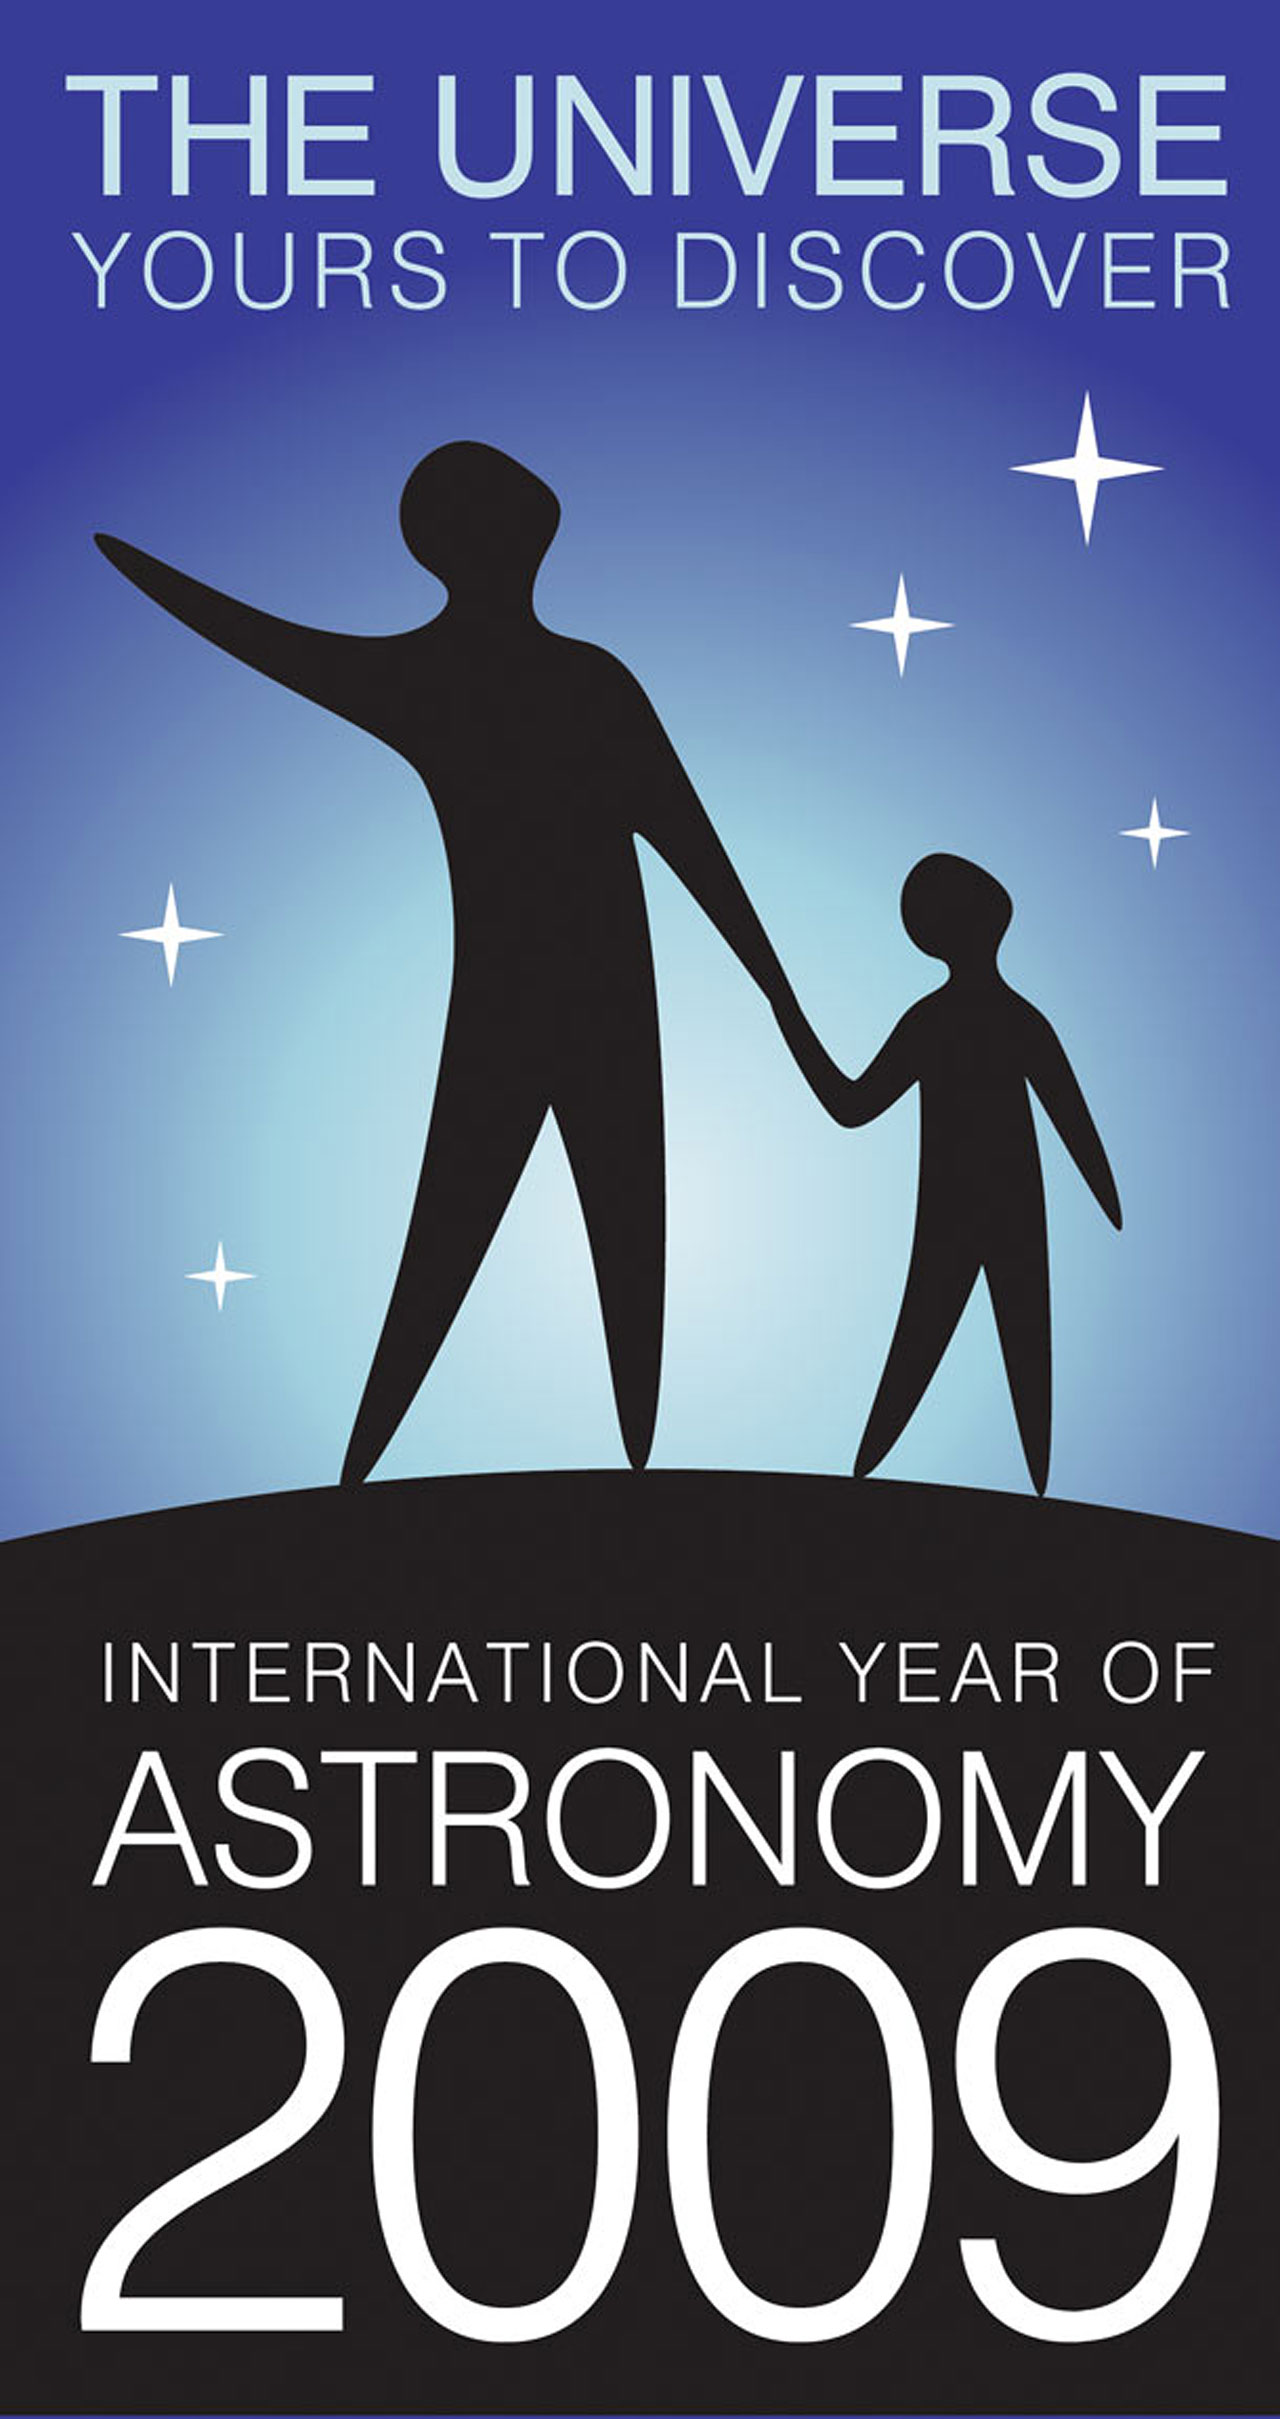 2009 to be the International Year of Astronomy